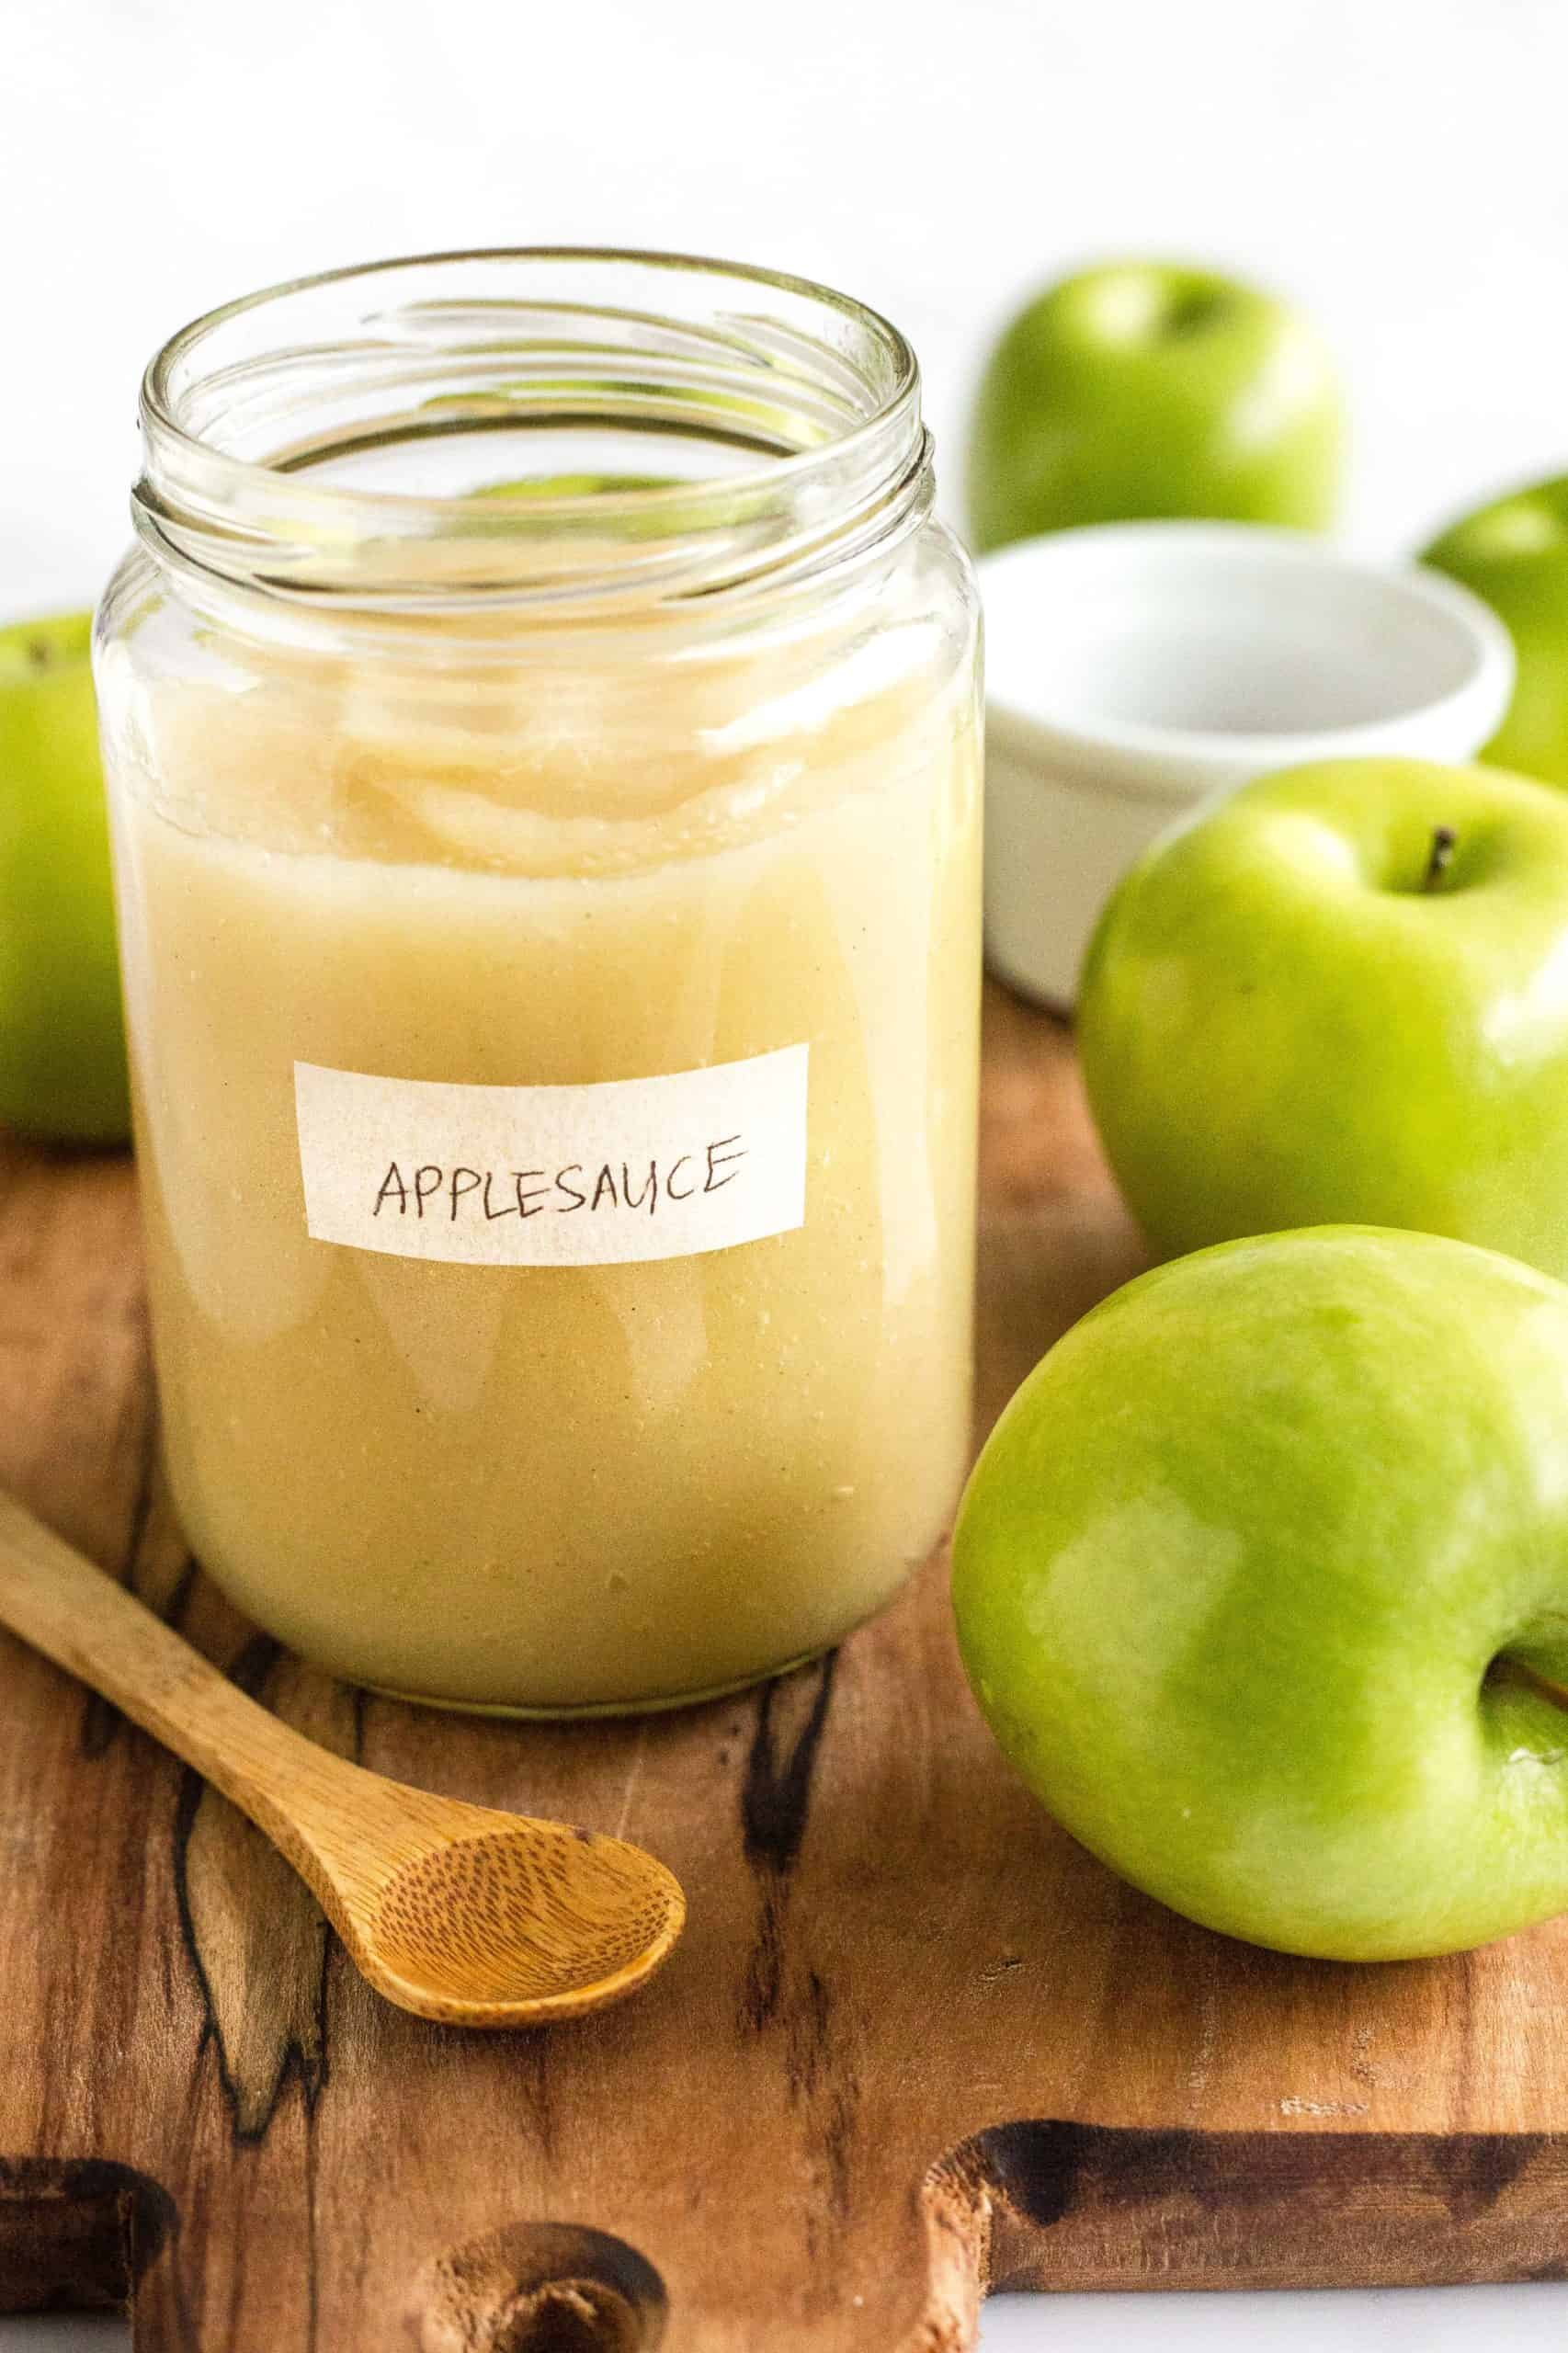 A jar of freshly made homemade applesauce surrounded by green apples on a wooden board.